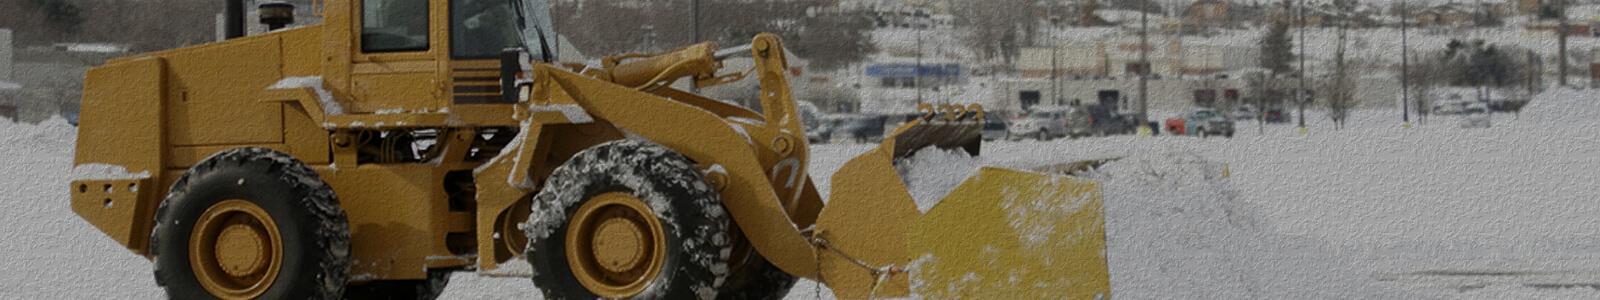 snow-removal-banner-img